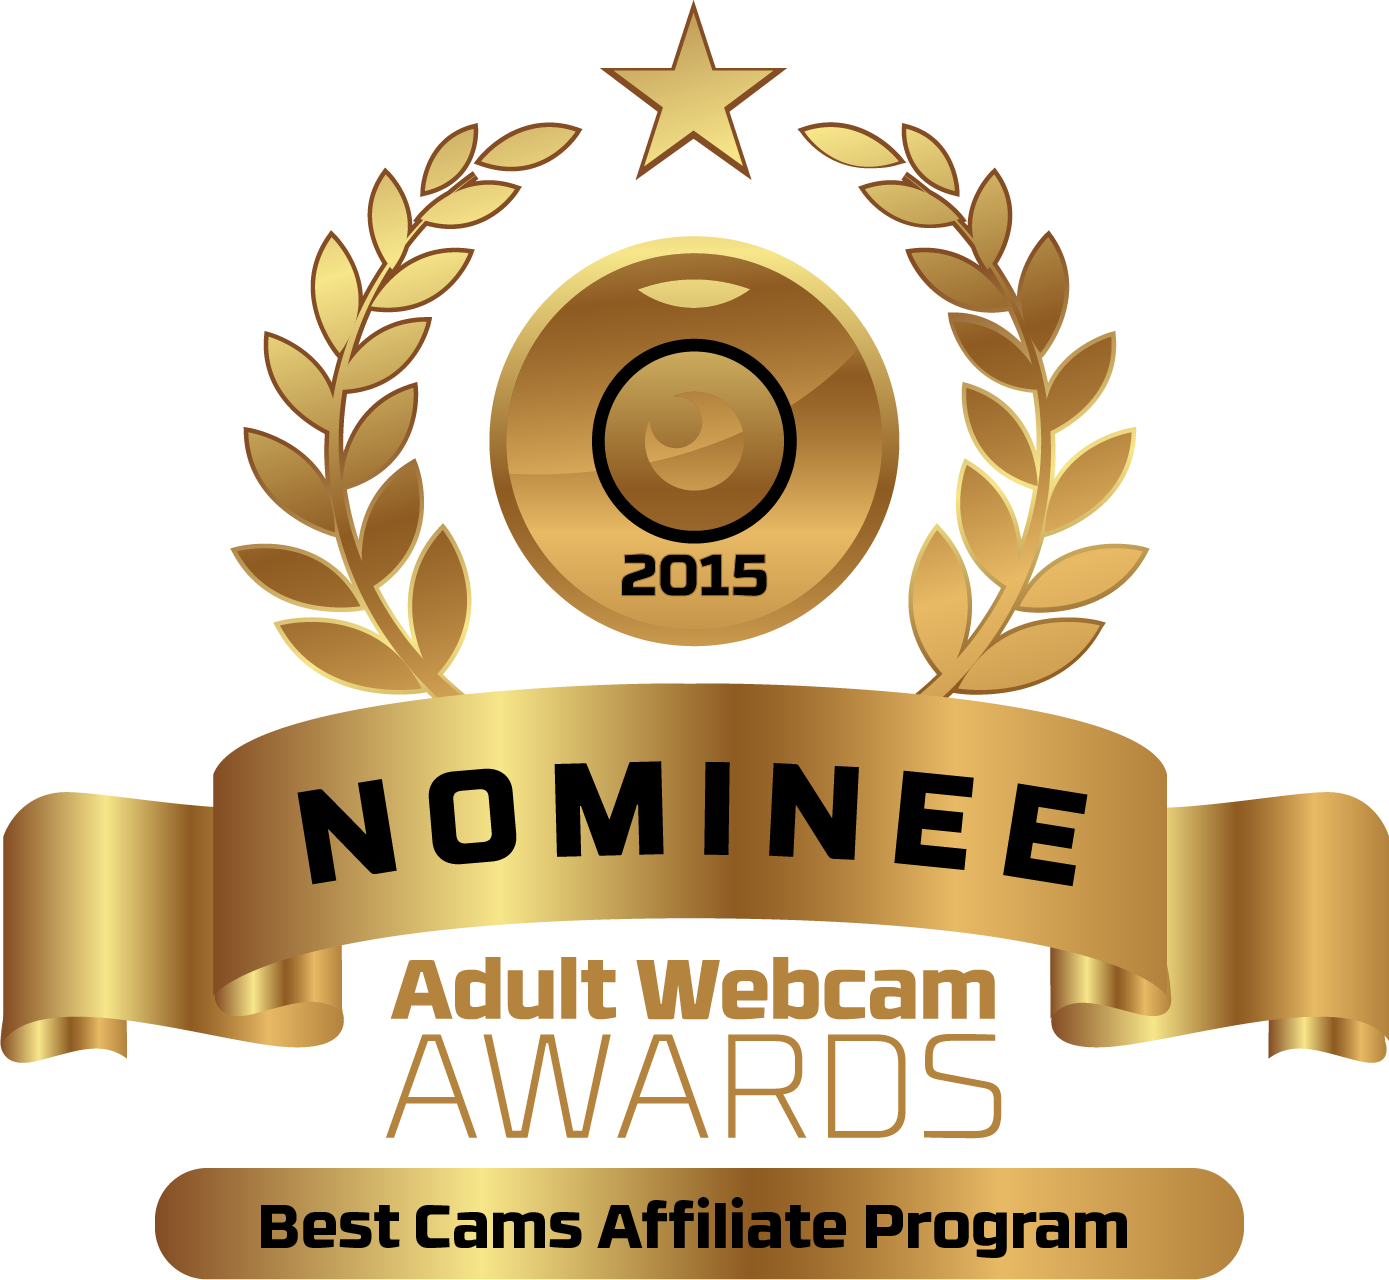 Best Cams Affiliate Program Nominee Badge